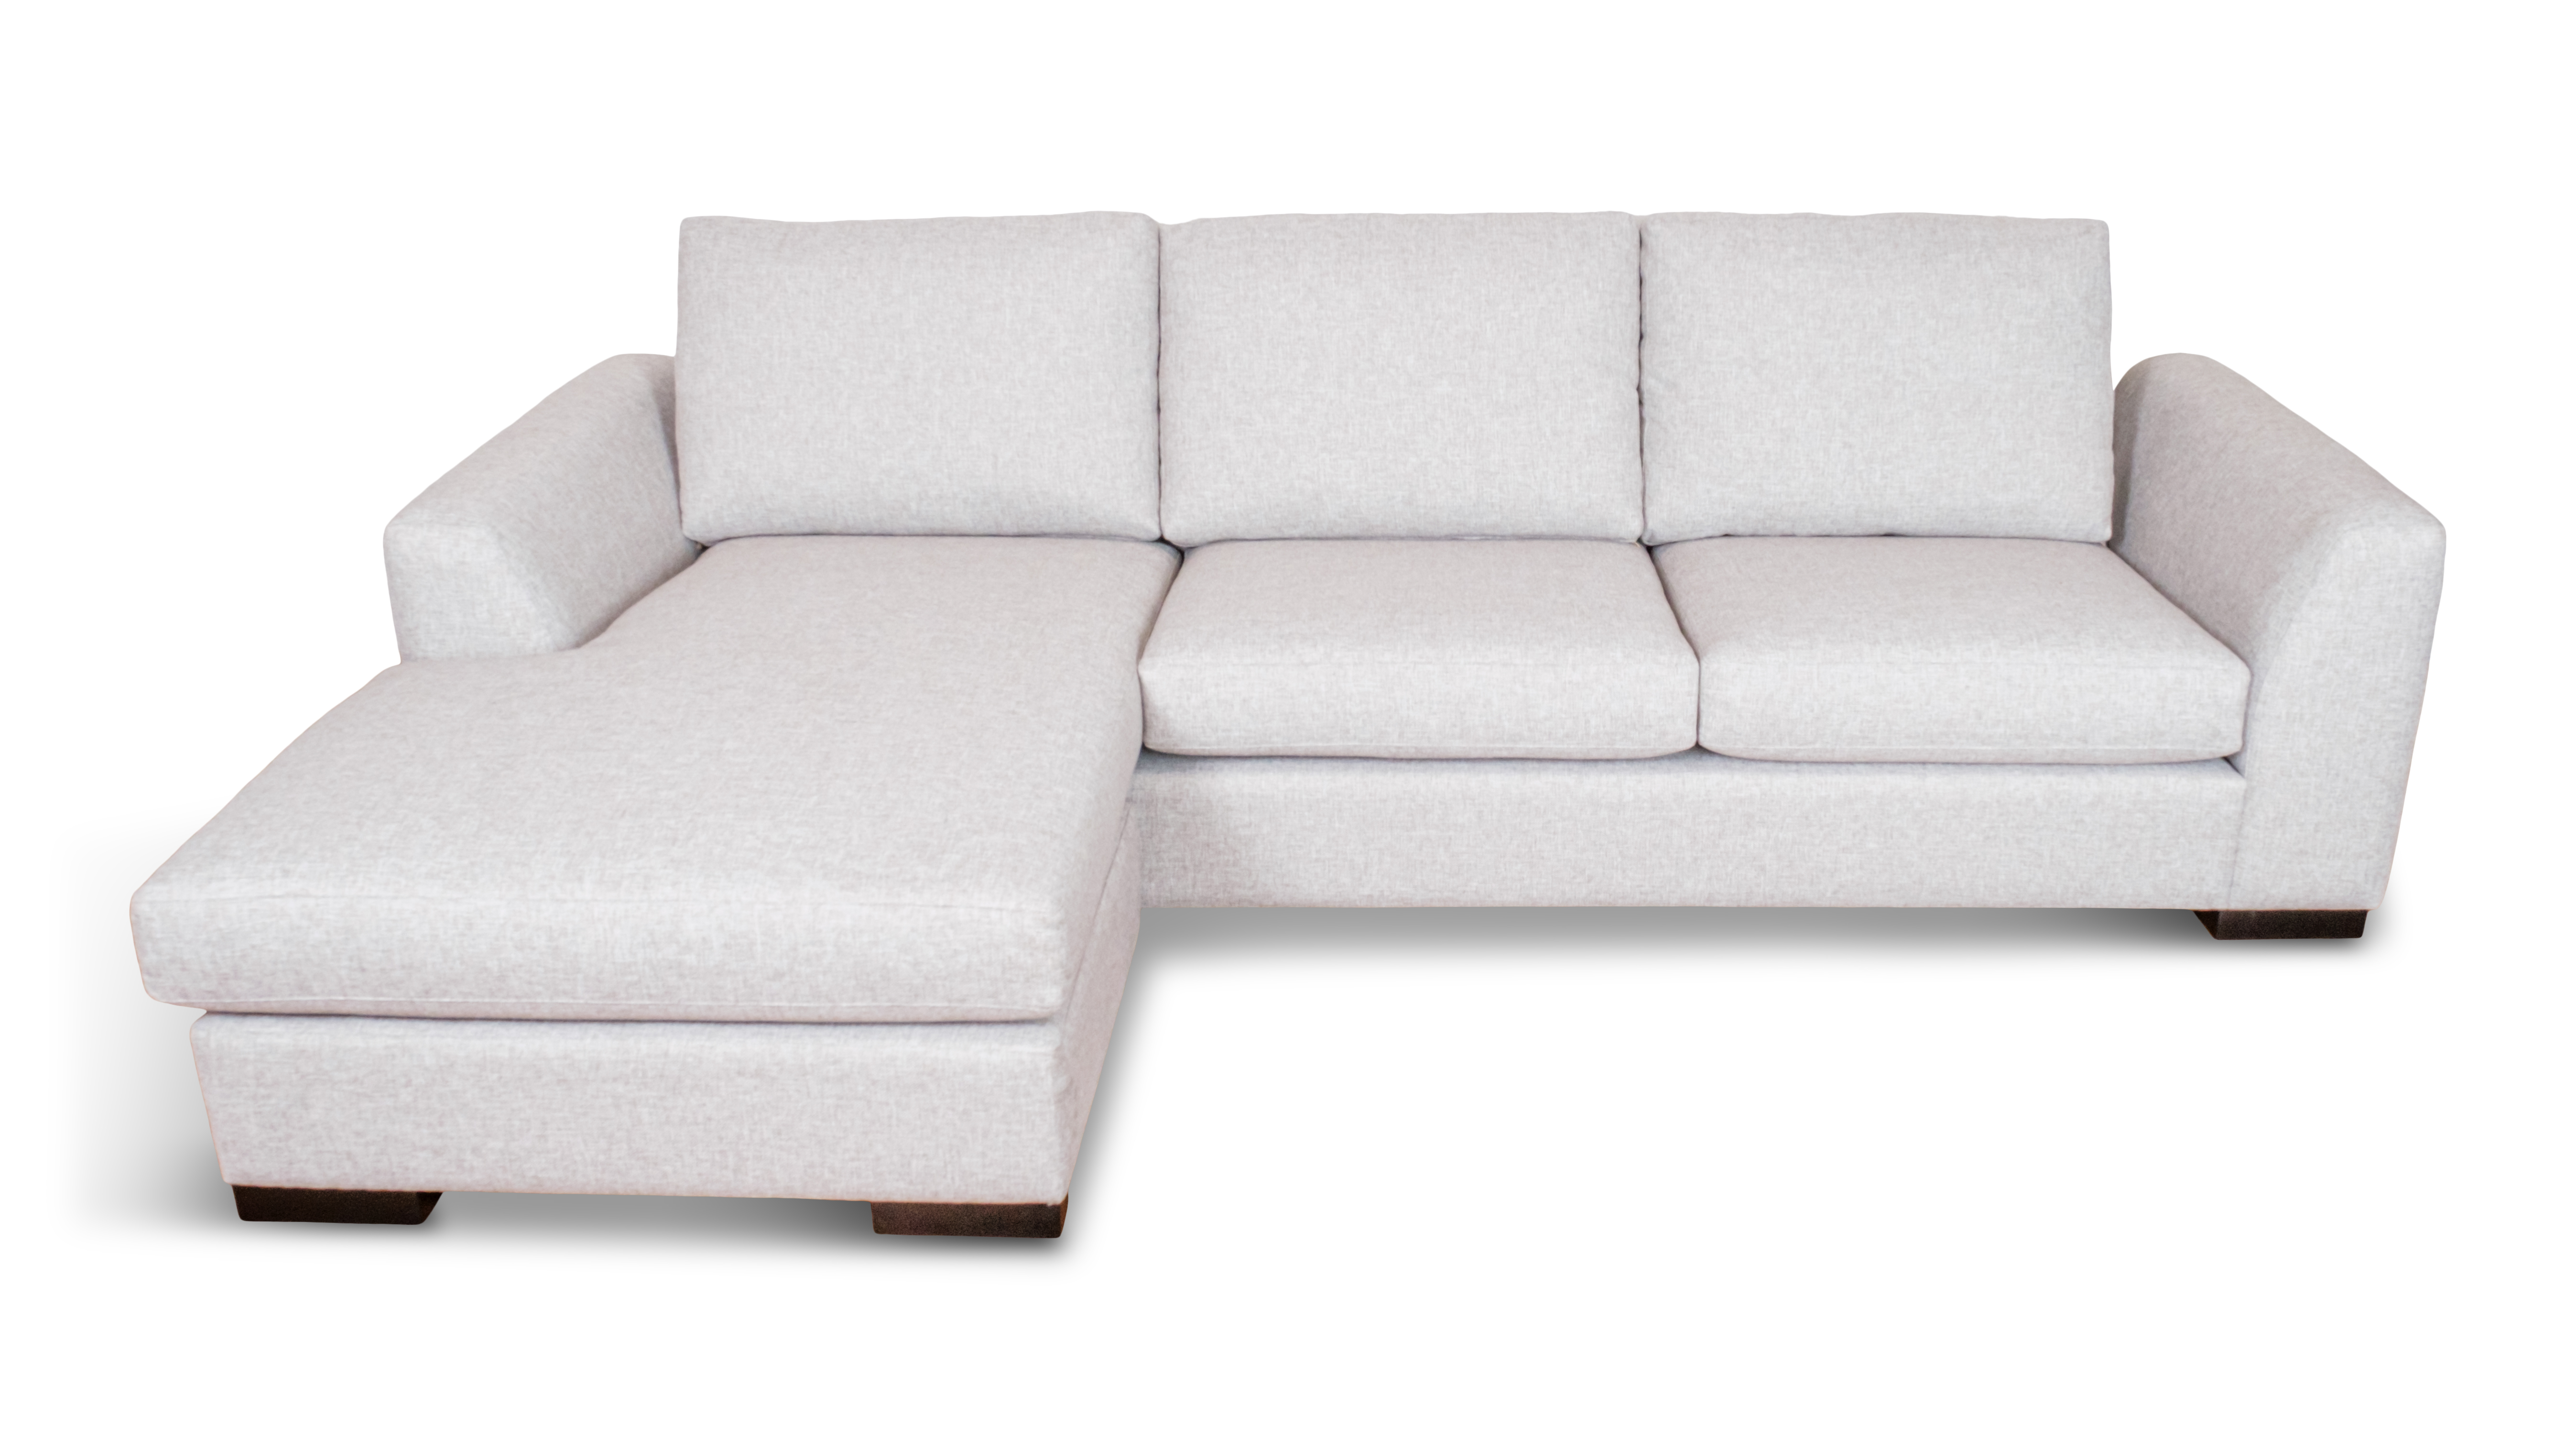 Weber-3.5-Seater-Chaise-Front-Sheldon-Silver (1)